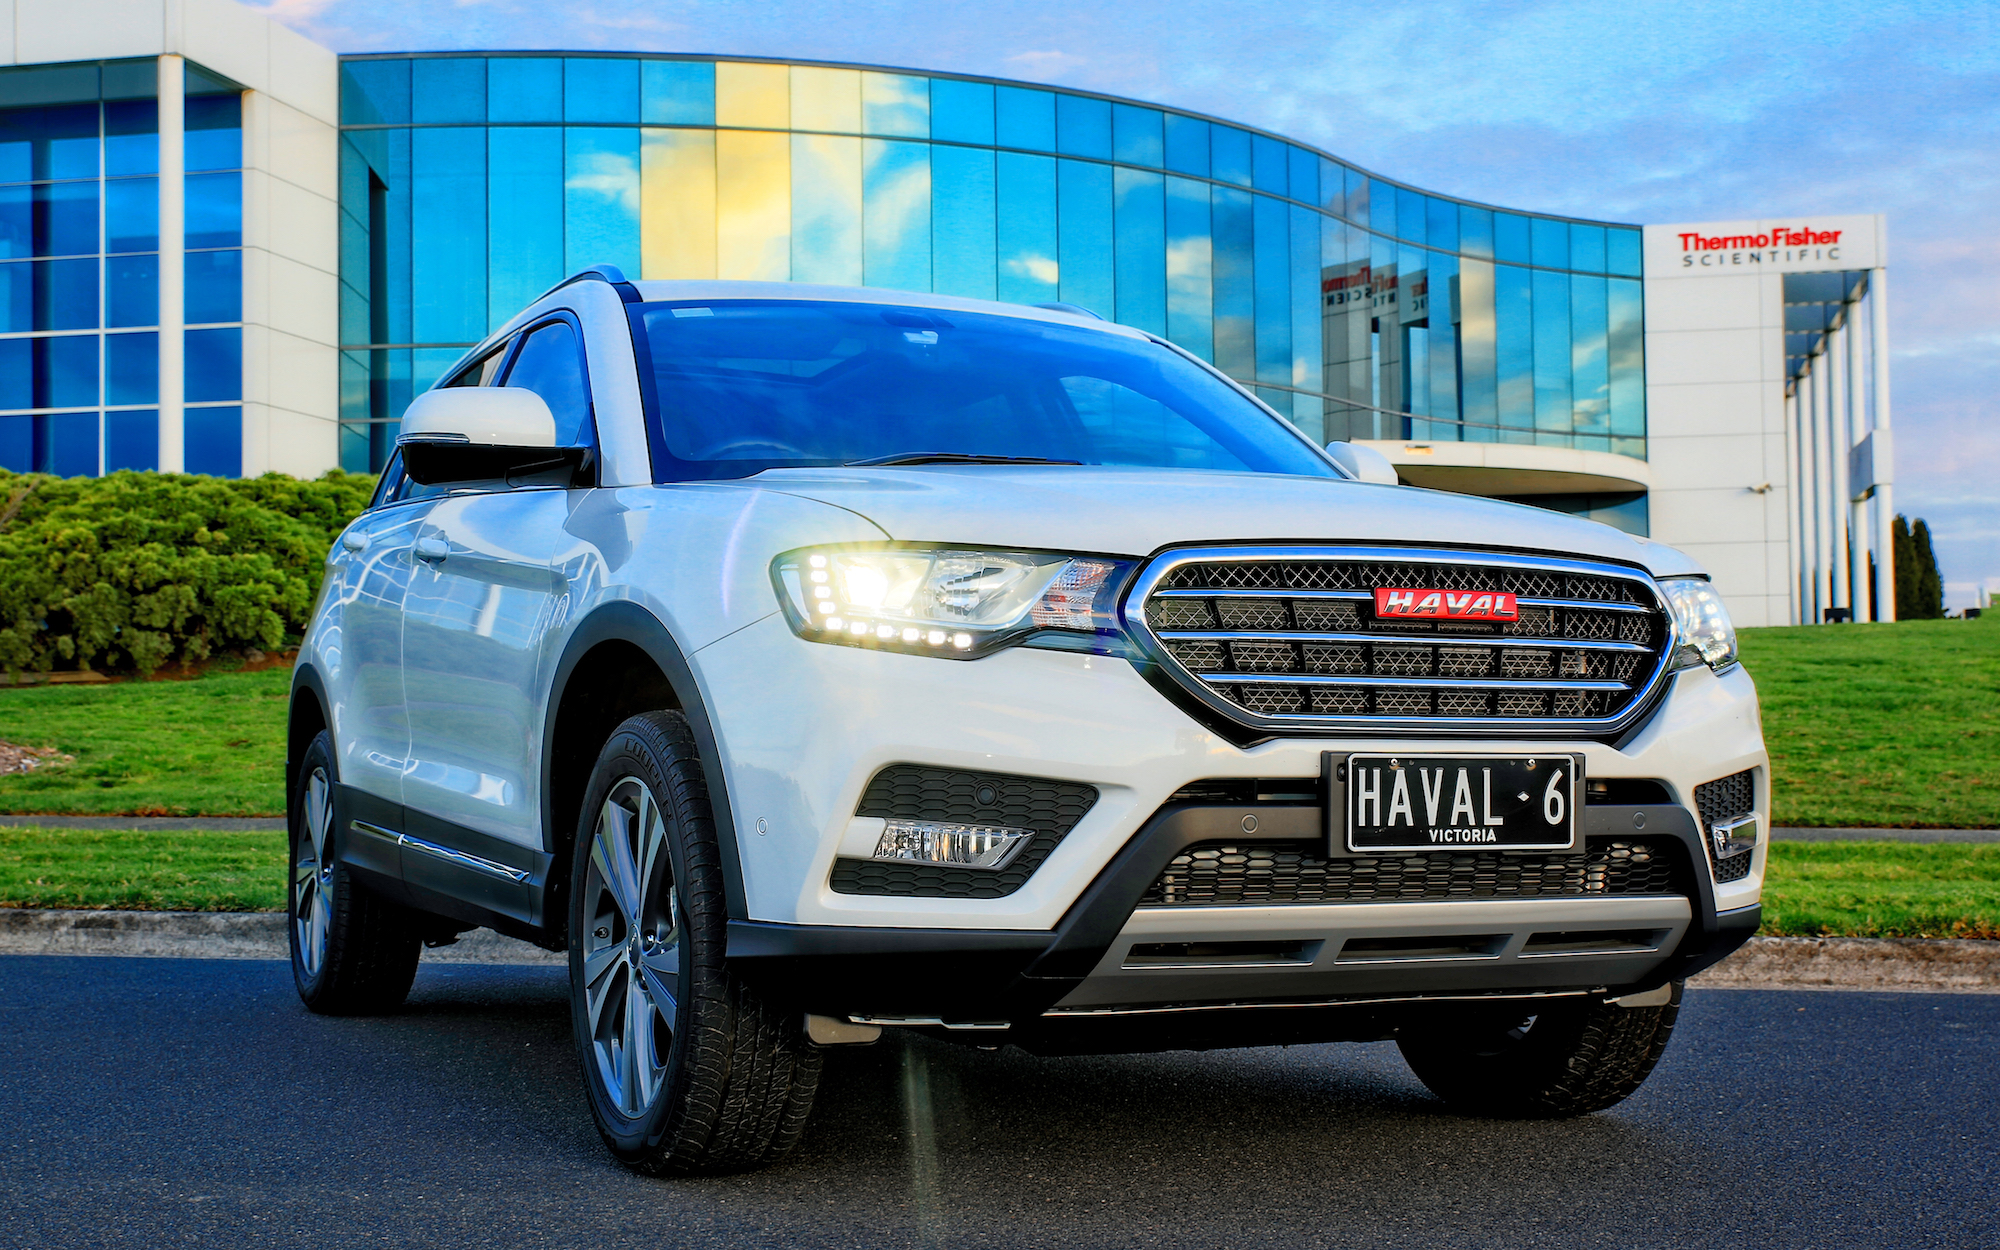 2018 Mustang Gt Pricing >> 2017 Haval H6 pricing and specs - photos | CarAdvice